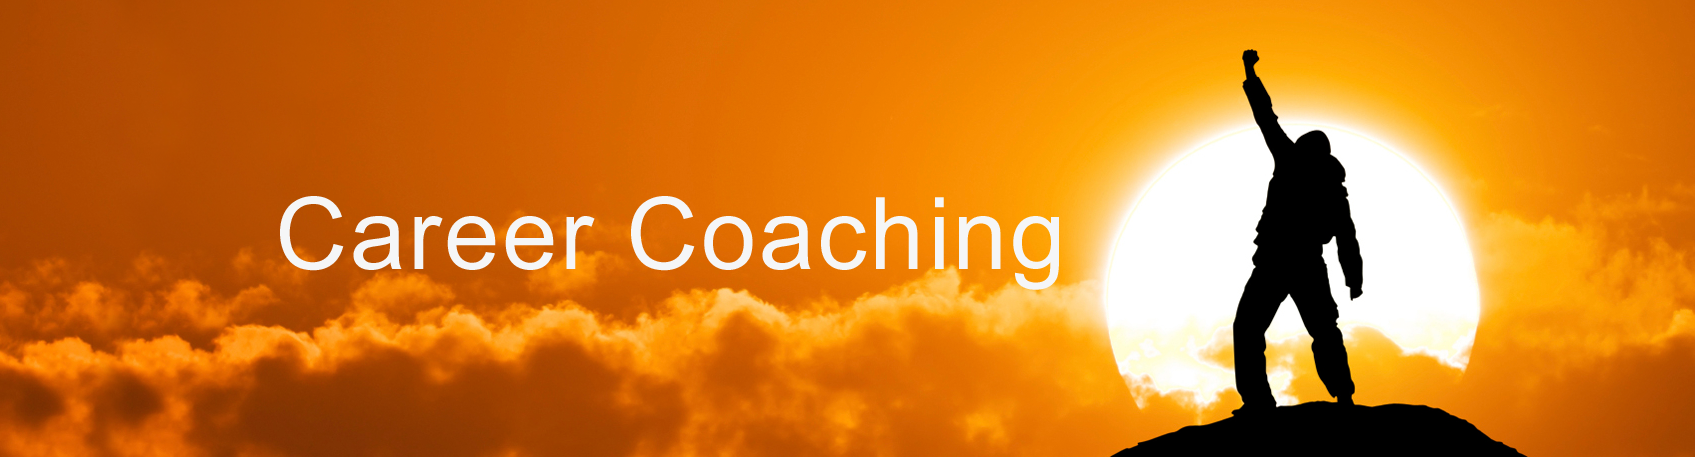 the hire challenge career coaching